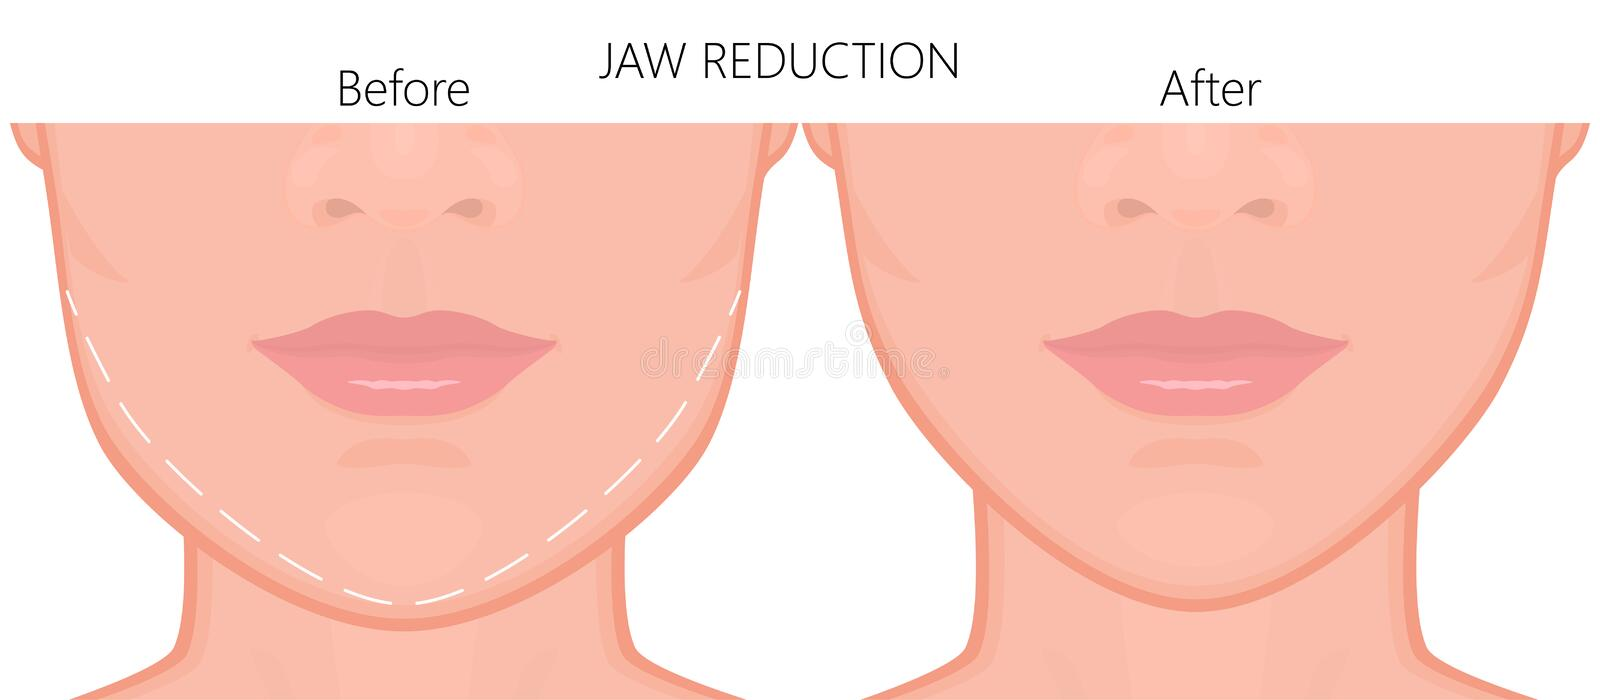 Fin de chirurgie de réduction de front_Jaw de visage vers le haut de 1 illustration stock